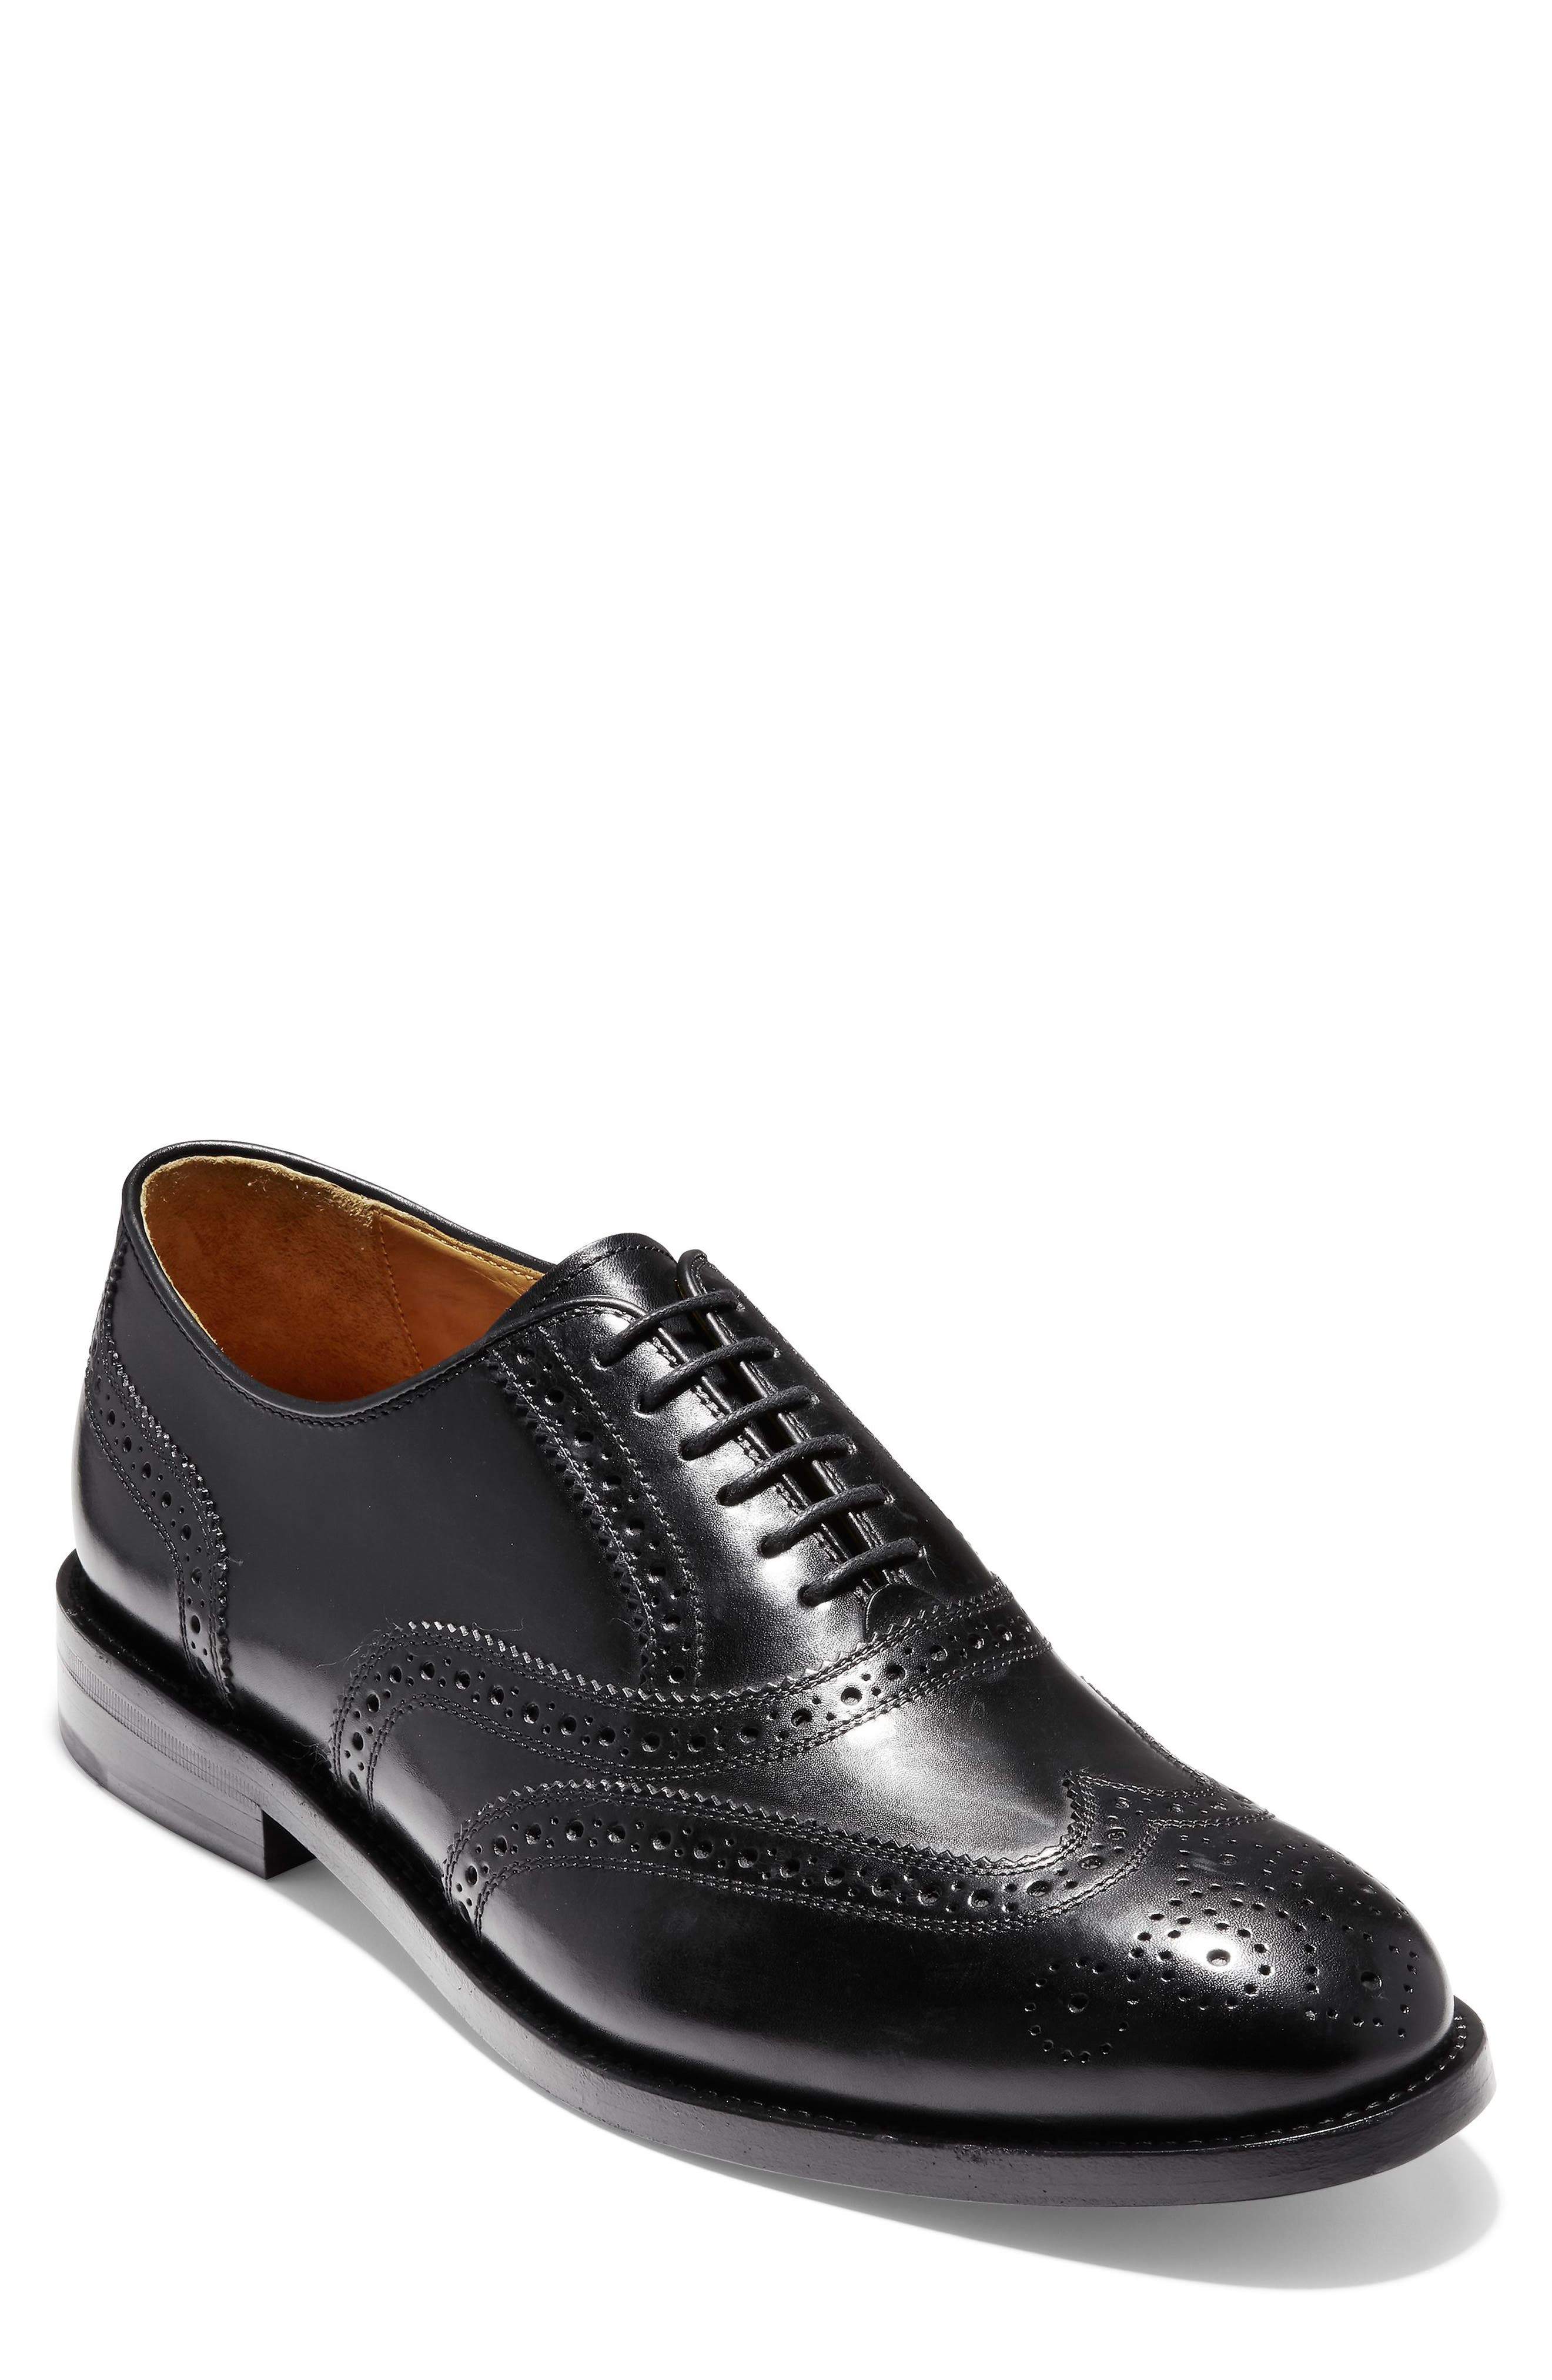 American Classics Kneeland Wingtip,                             Main thumbnail 1, color,                             BLACK LEATHER